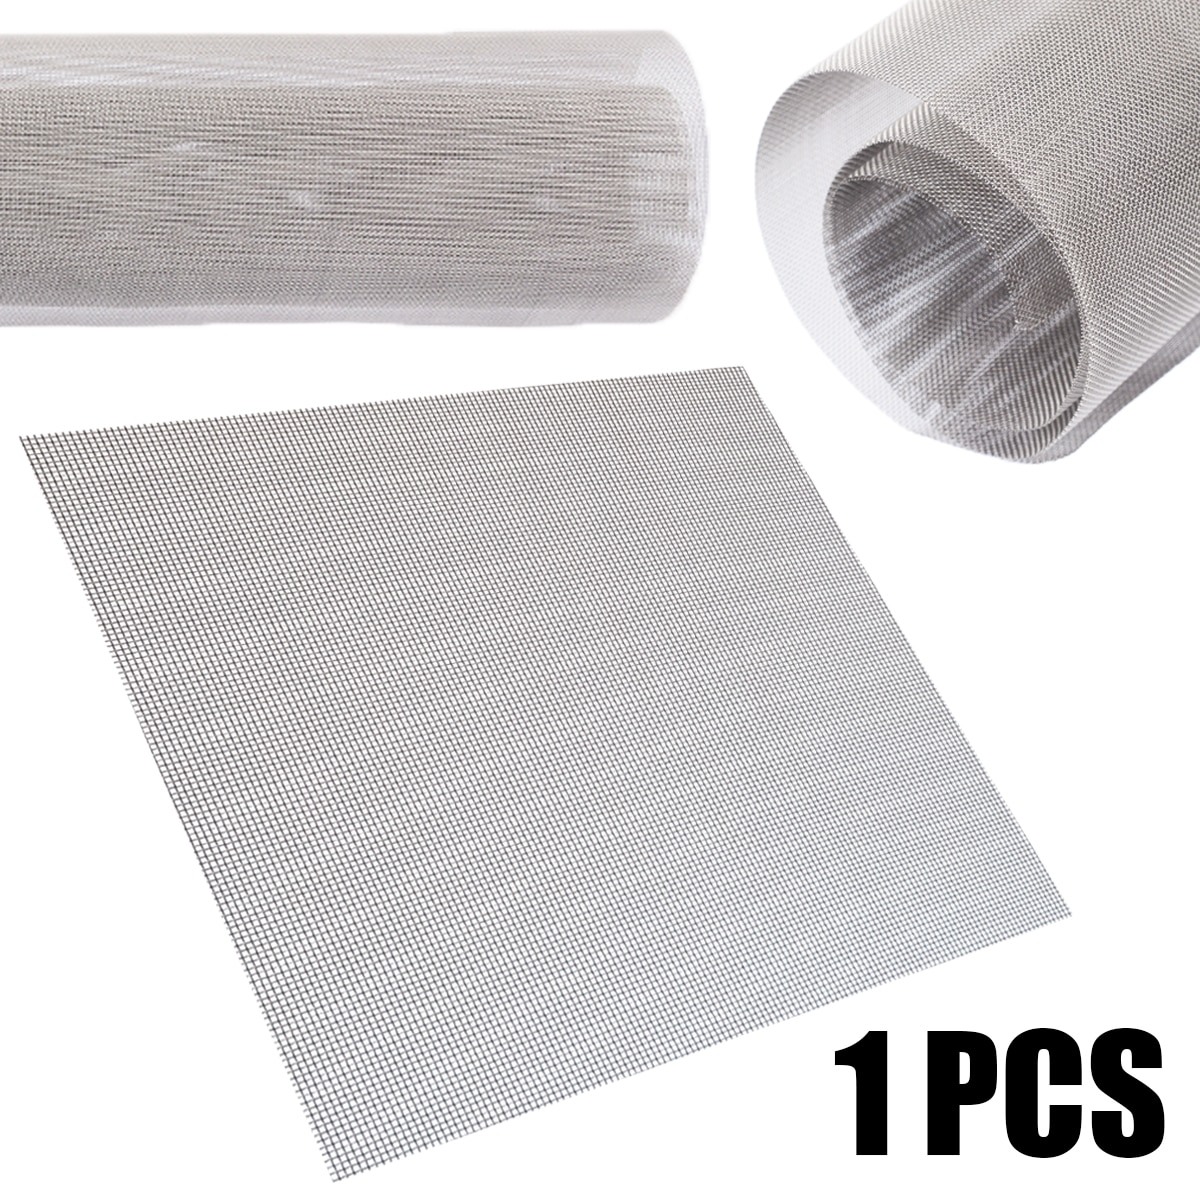 1Pcs 60 Mesh 304 Stainless Steel Filtration Woven Wire Mesh Cloth Screen 30x30cm with Weather Resist